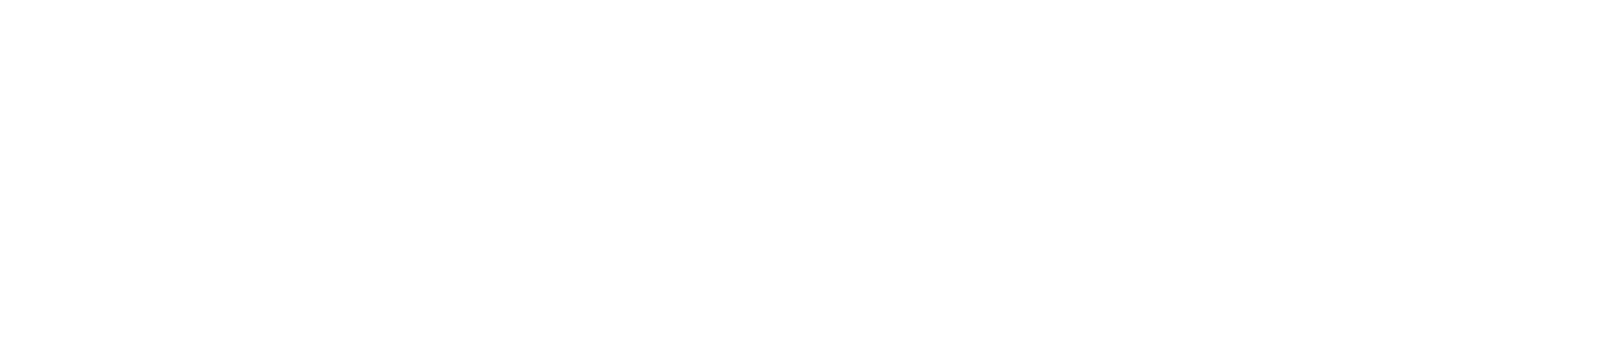 Meaning Images | Ultra HD 4K Wallpapers For Facebook, Instagram, Tweeter, WhatsApp And Social Media